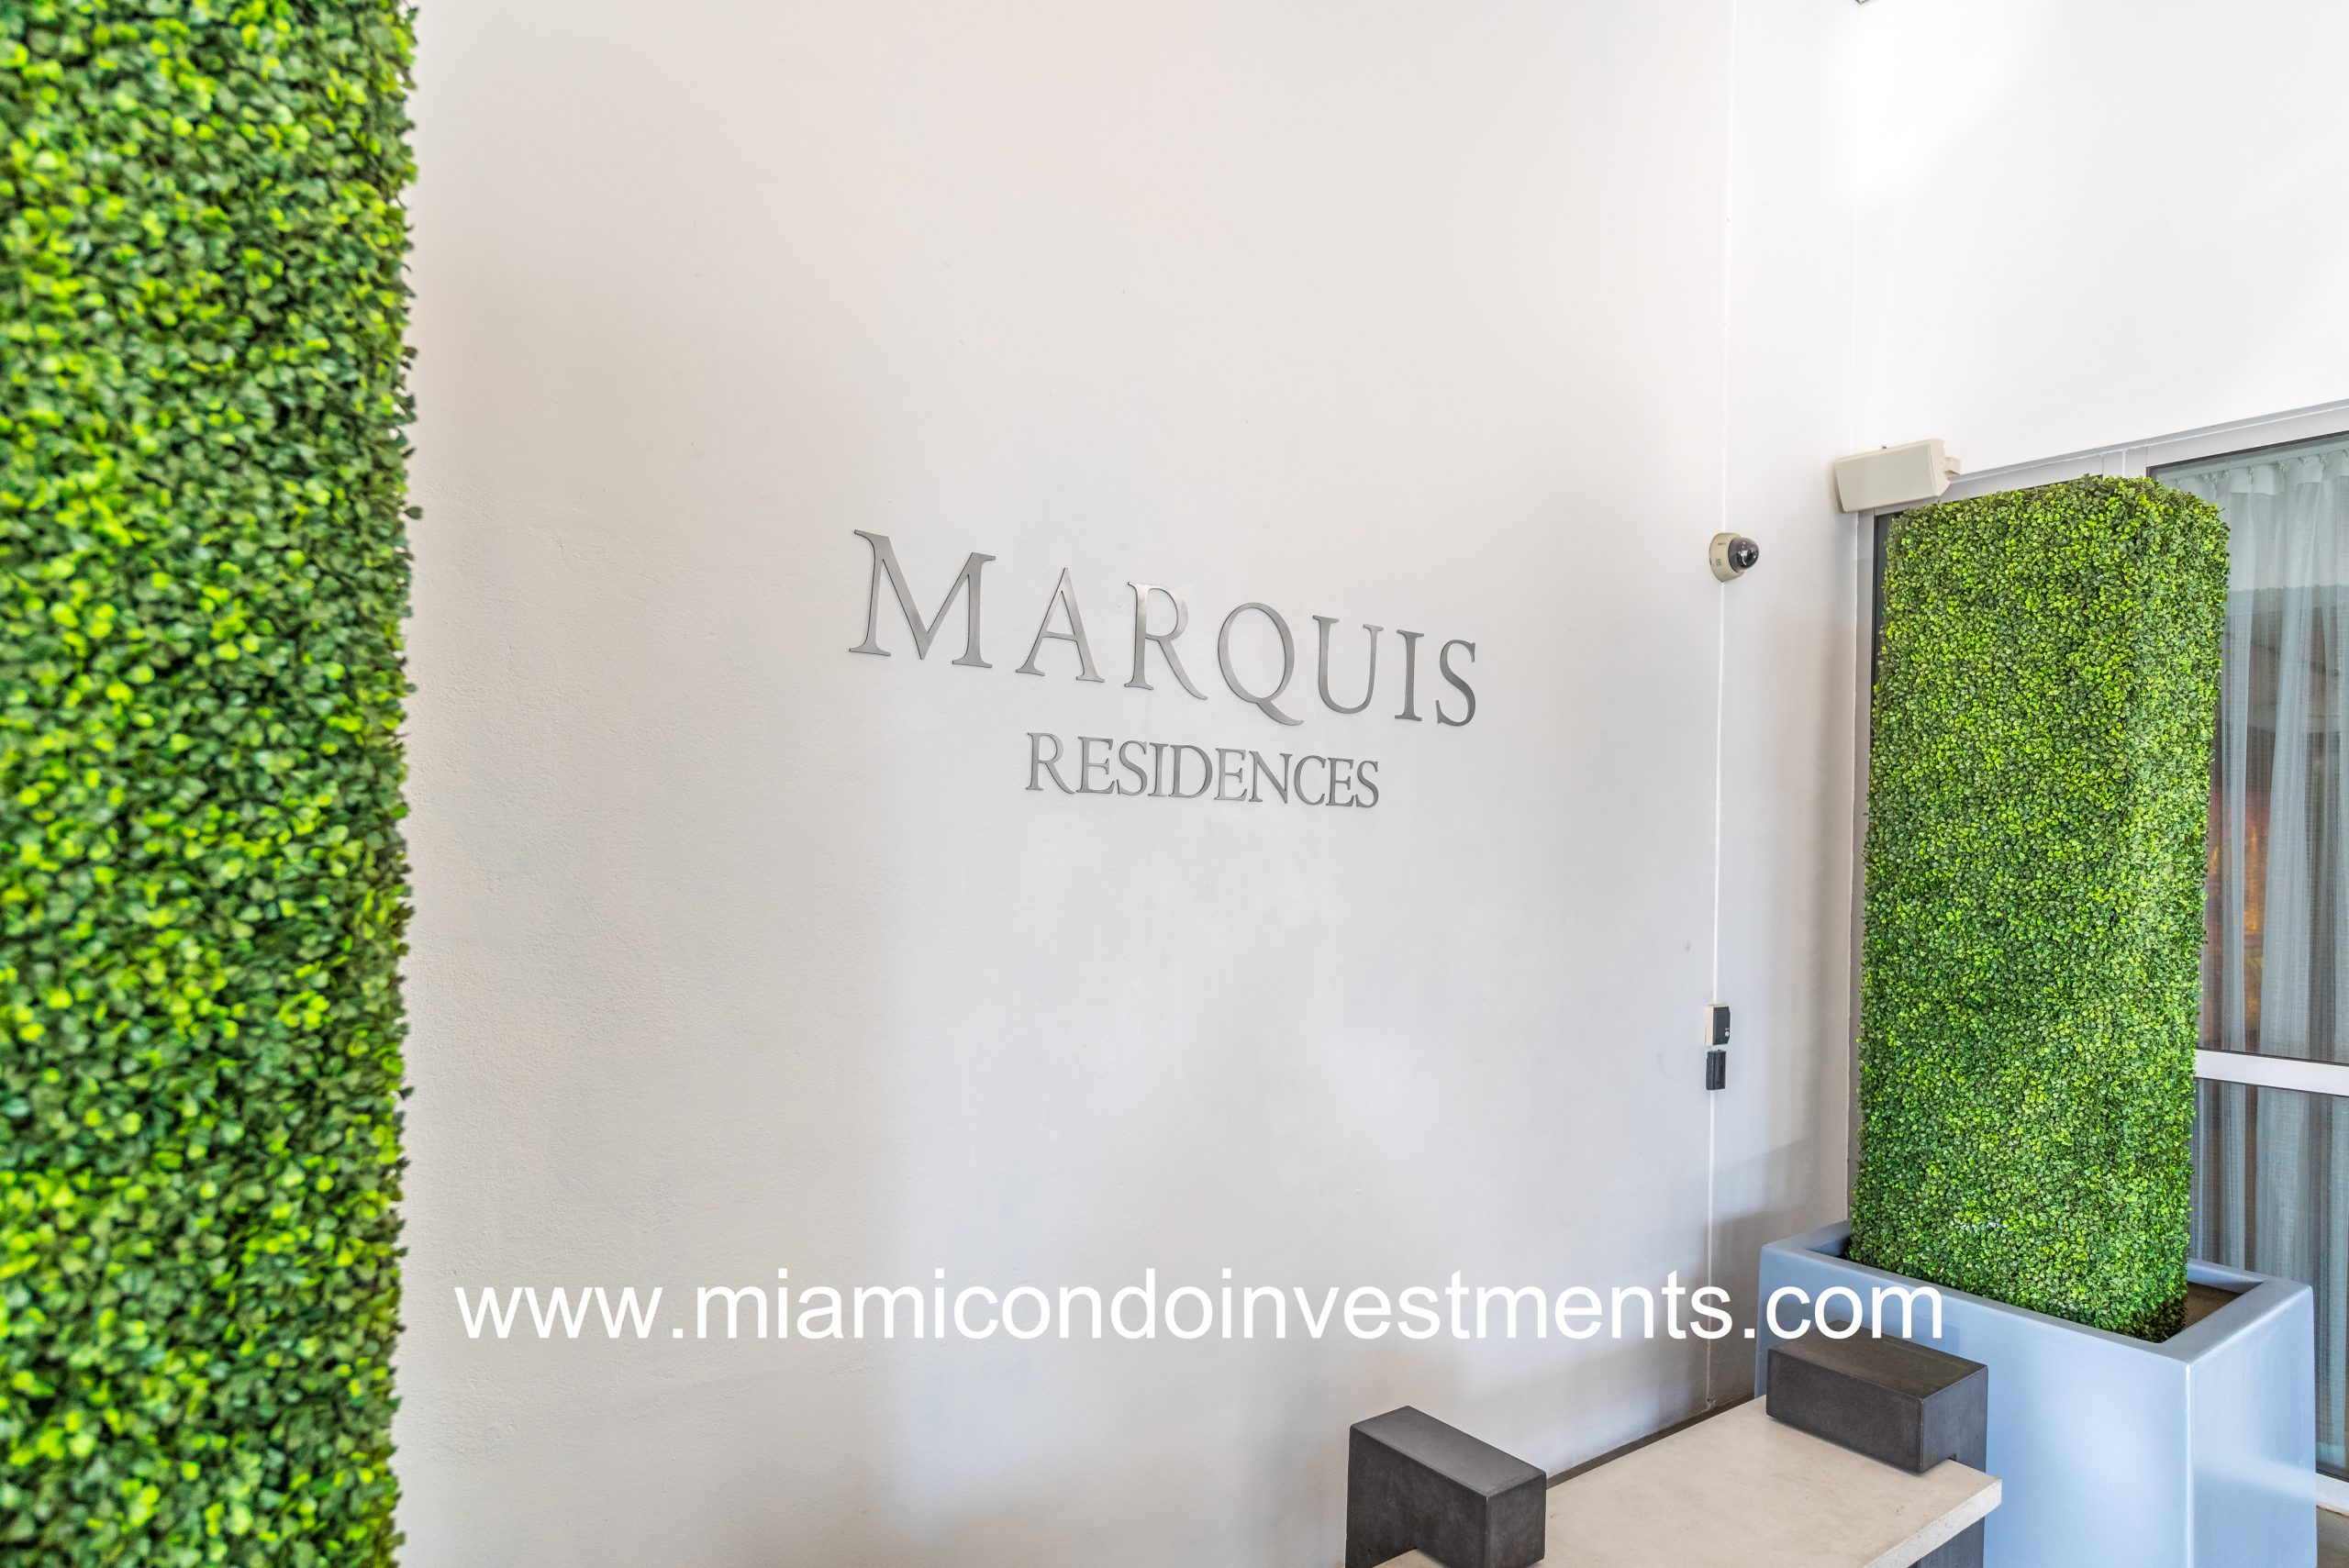 Front Entrance of the Marquis Residences of Miami.